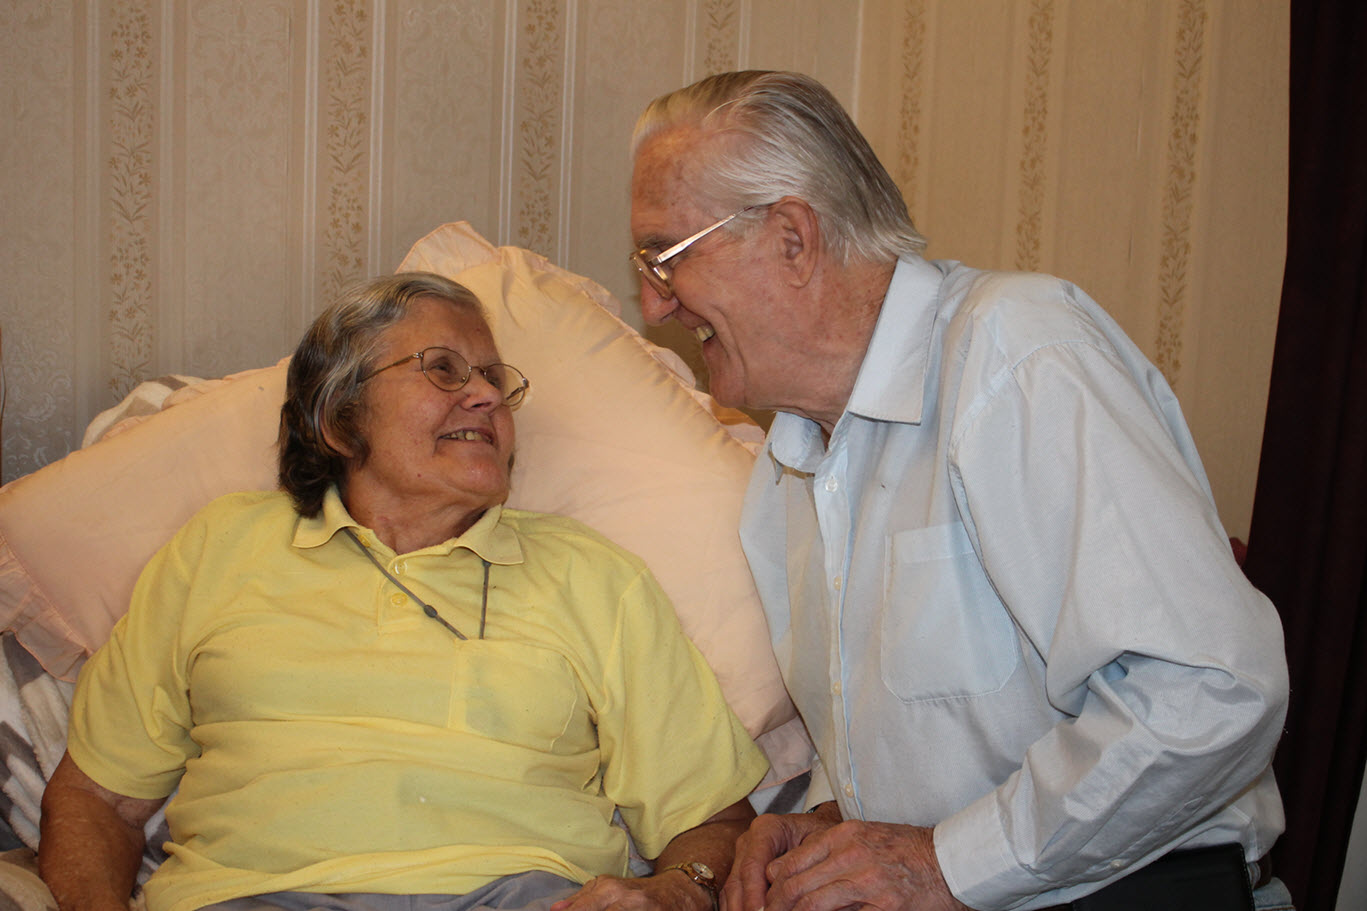 two older people smiling